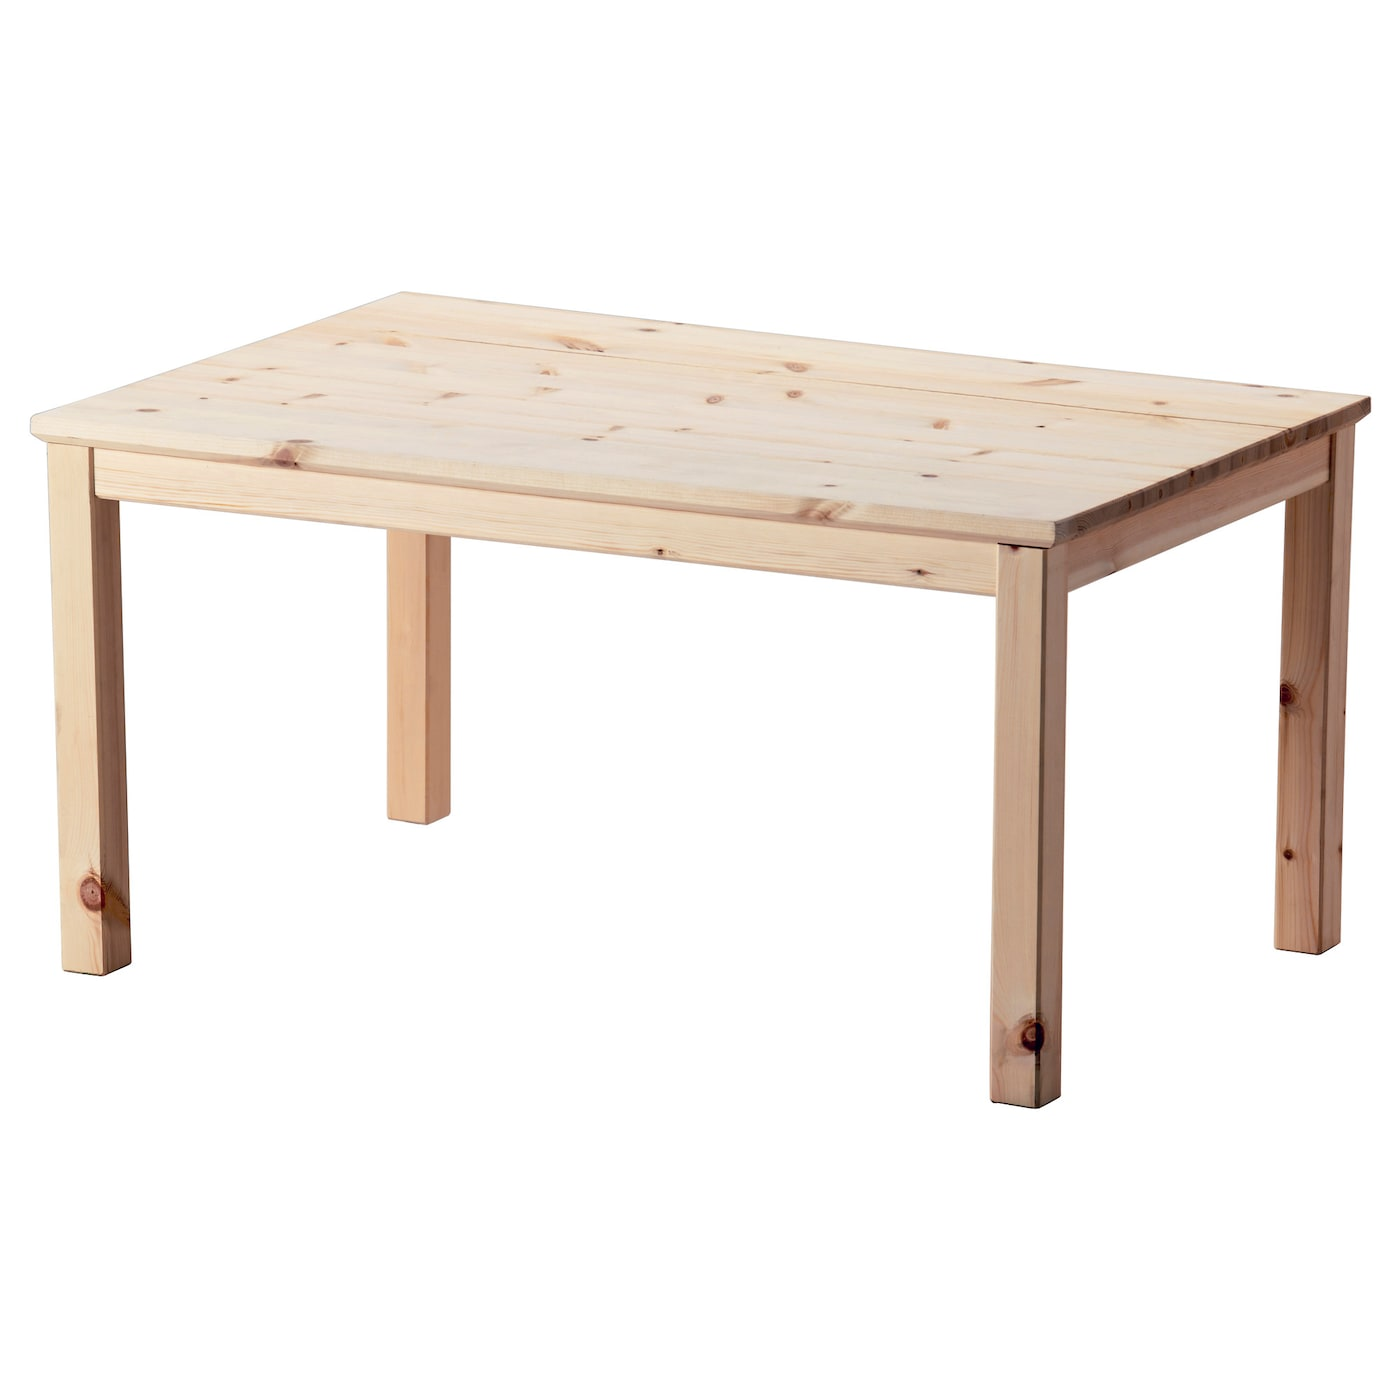 occasional tables - tray, storage & window tables | ikea